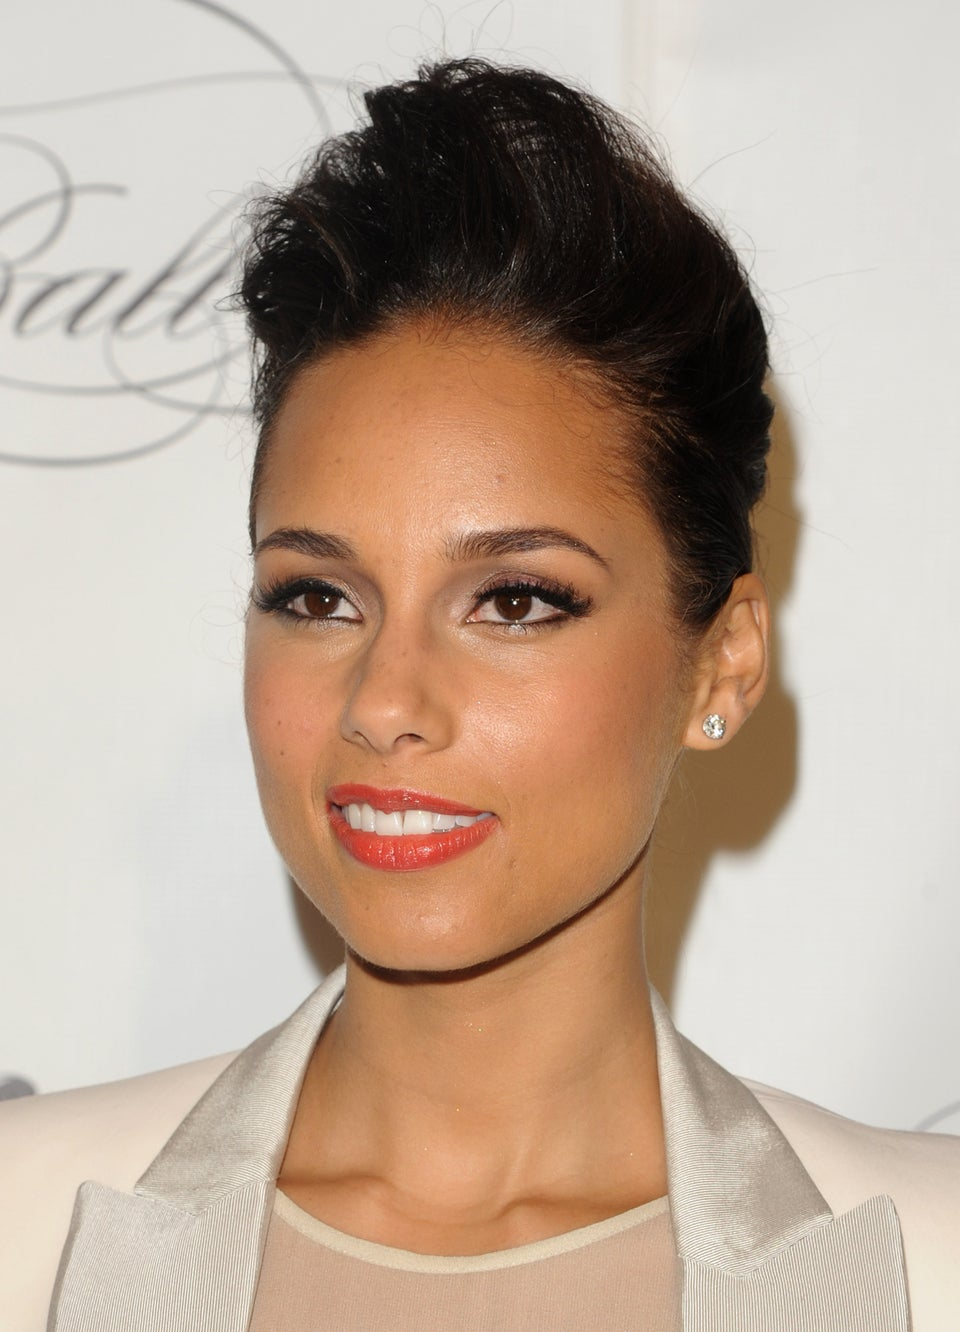 Alicia Keys on New Album: 'I'm a New Person, Everything is New'